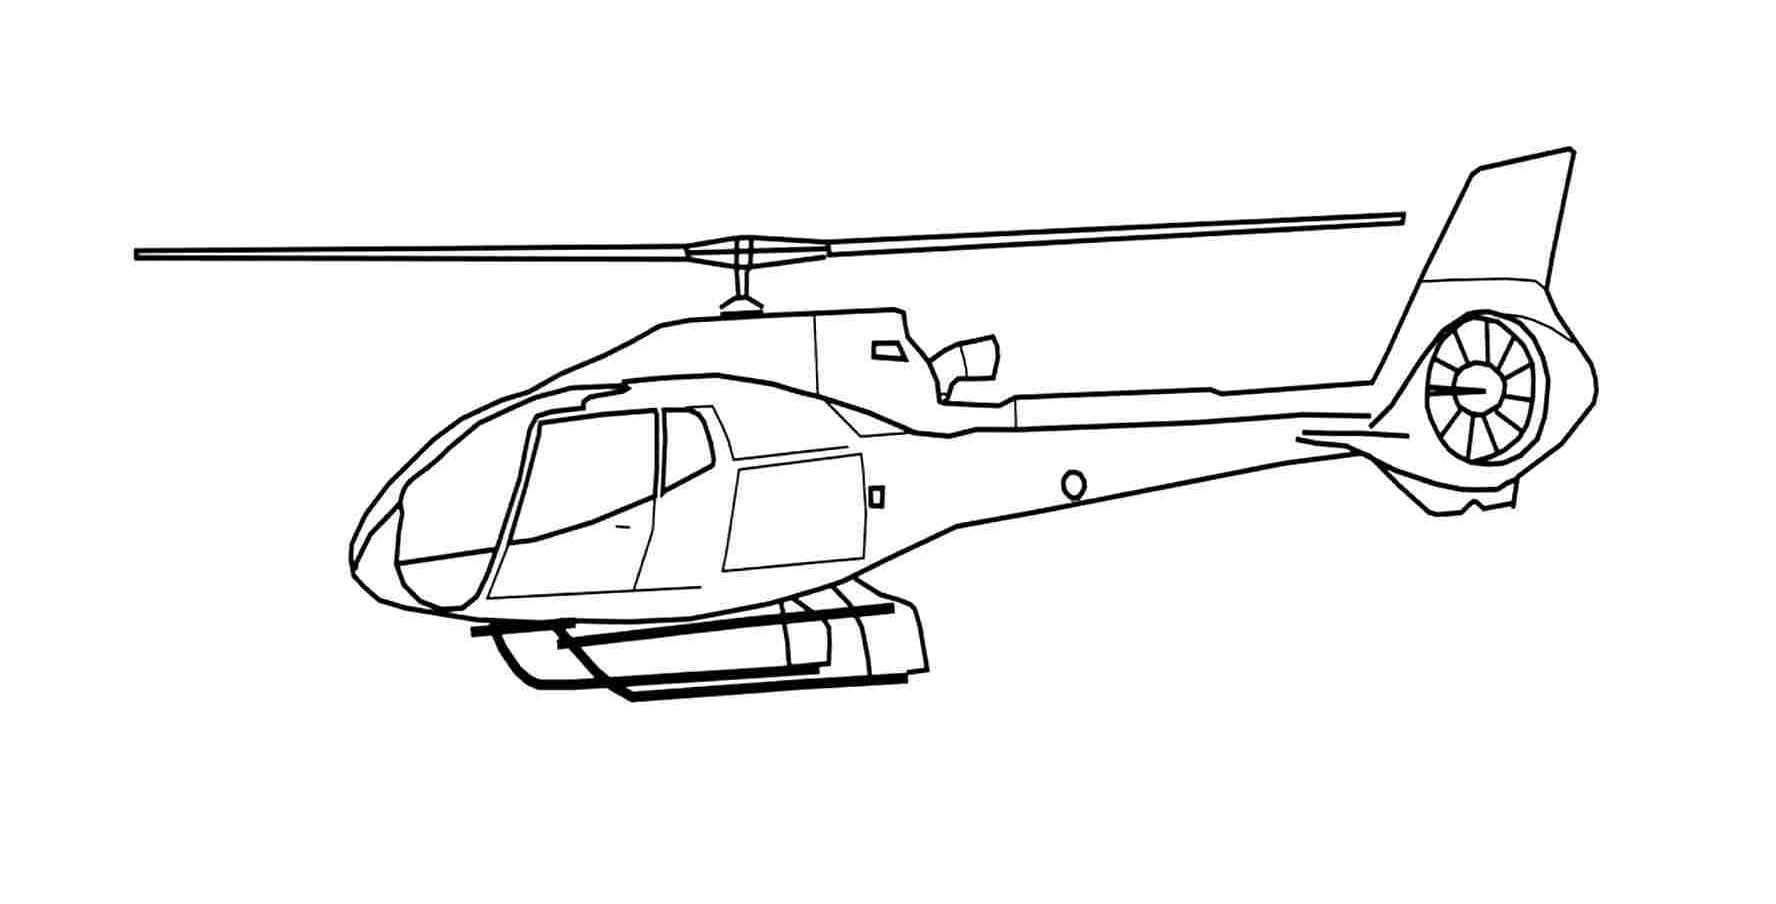 helicopter colouring pictures free printable helicopter coloring pages for kids pictures helicopter colouring 1 1